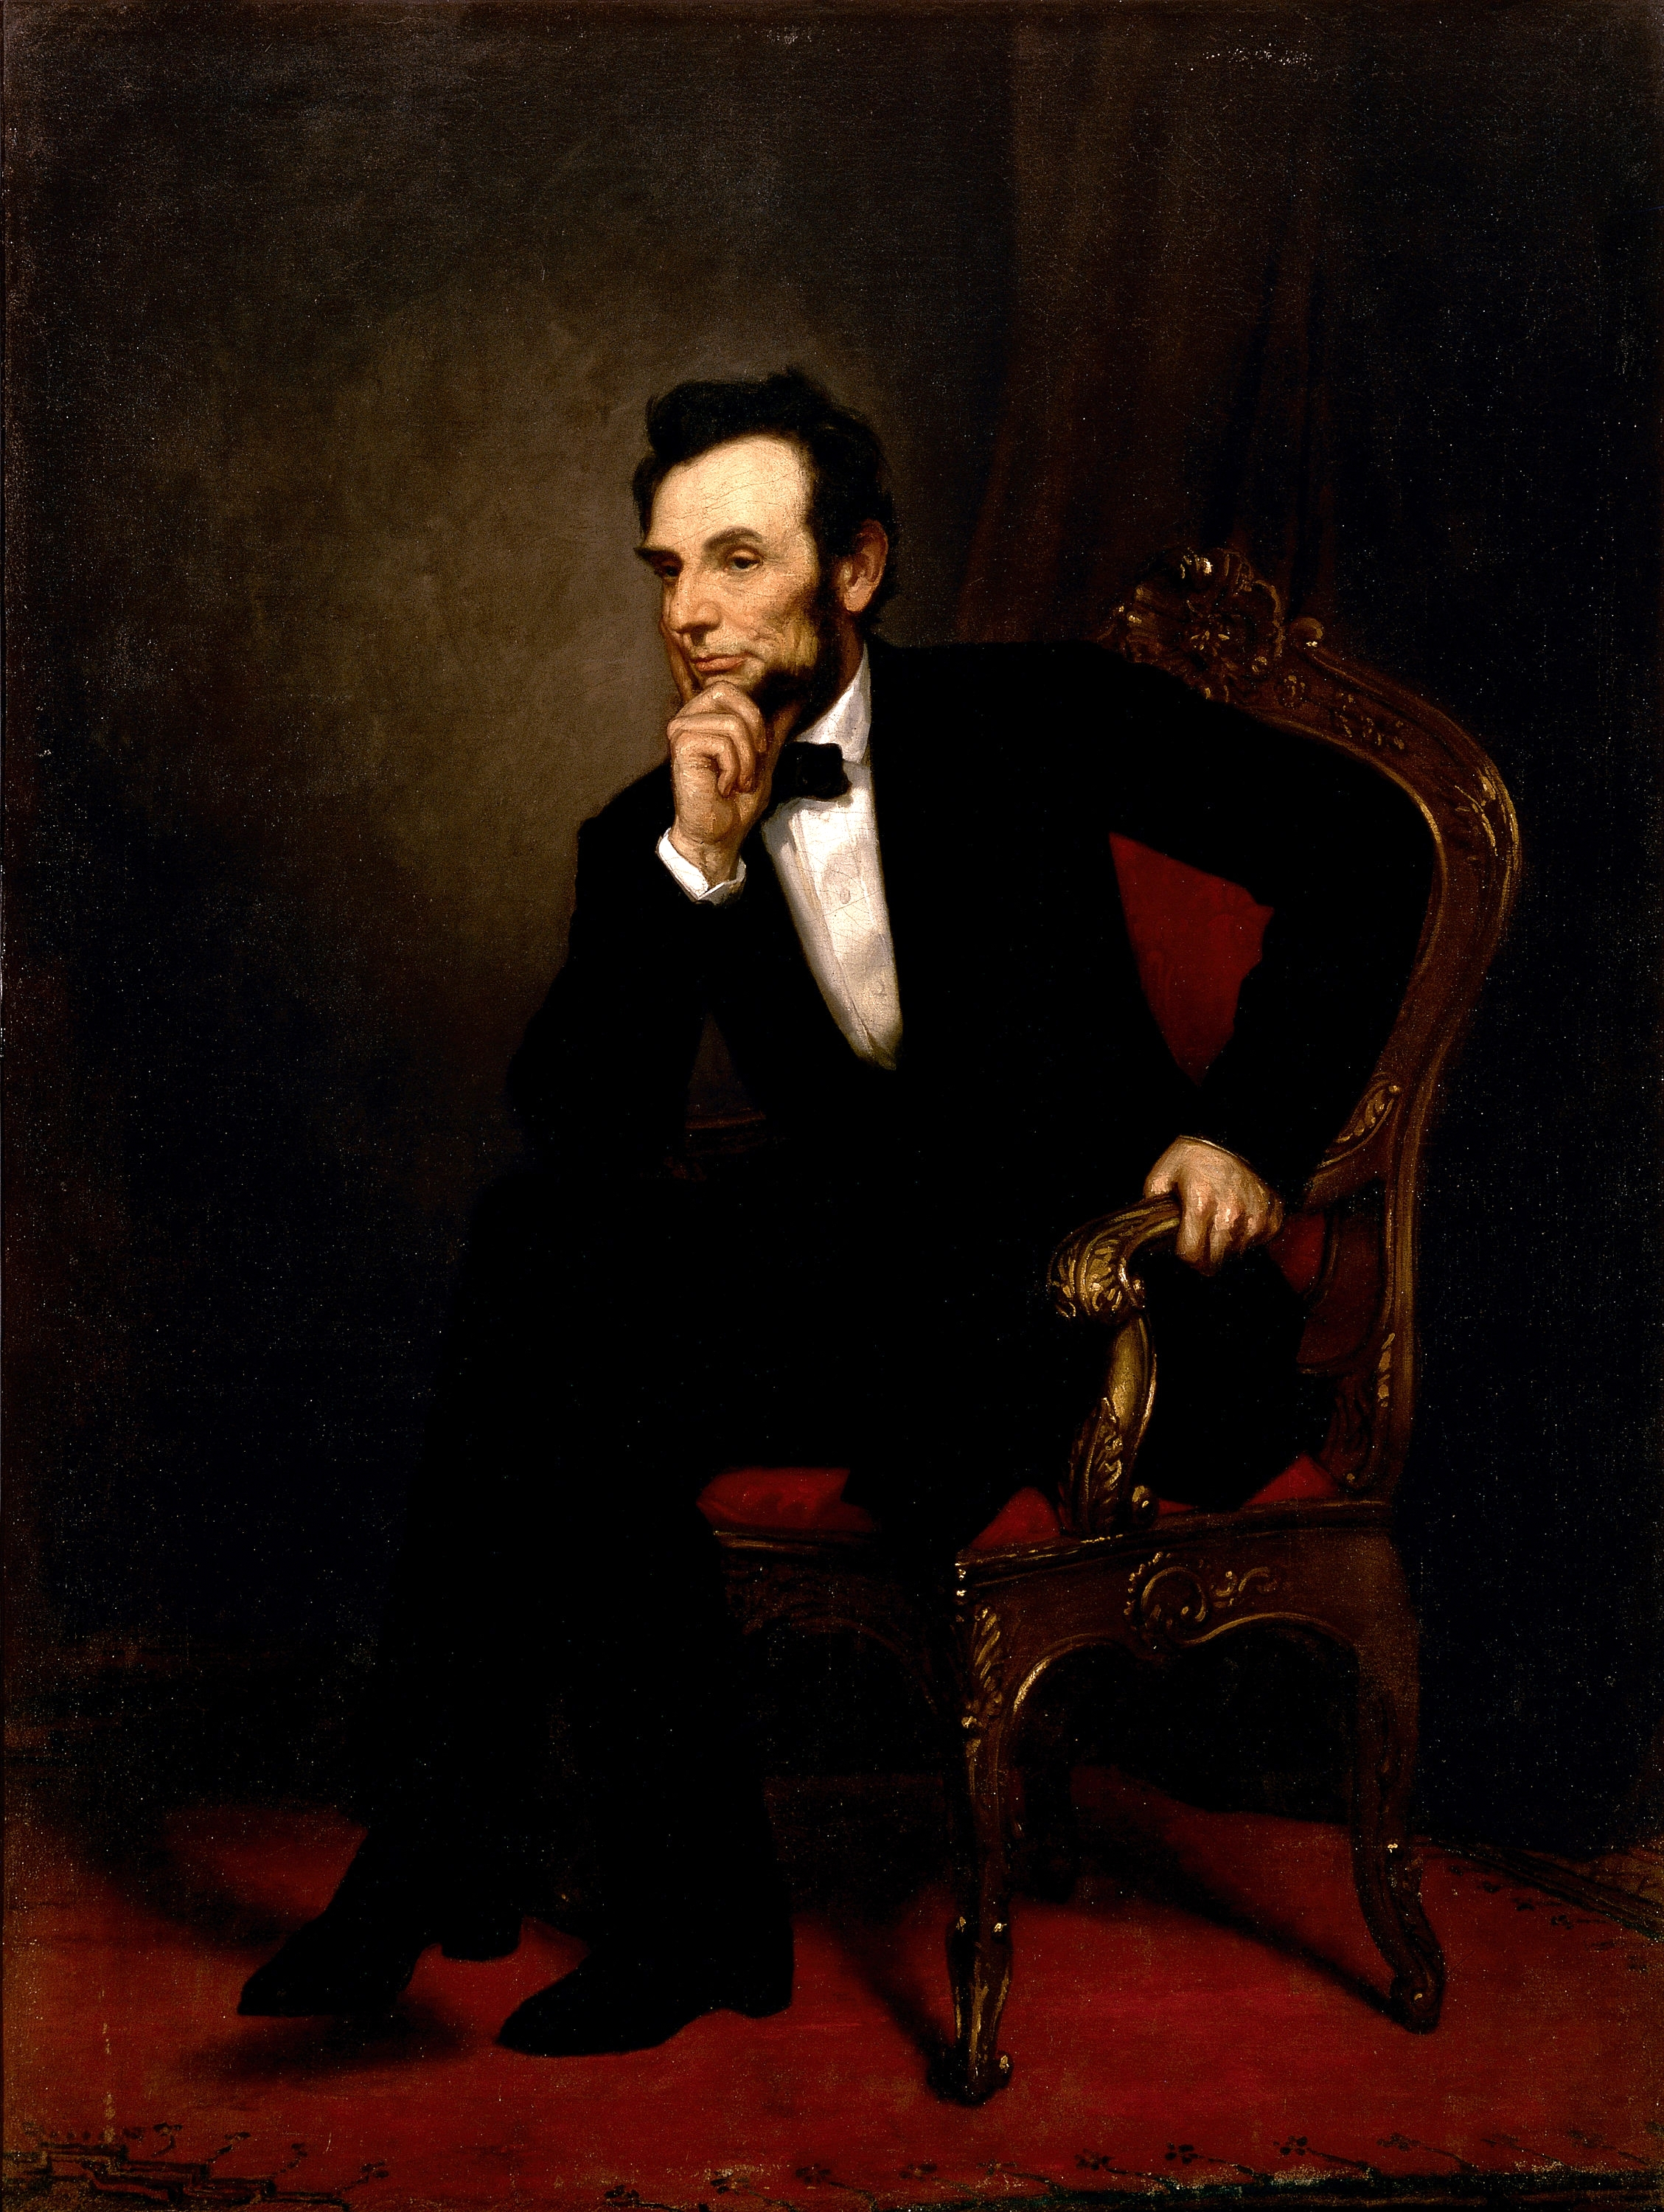 Abraham_Lincoln_by_George_Peter_Alexander_Healy.jpg